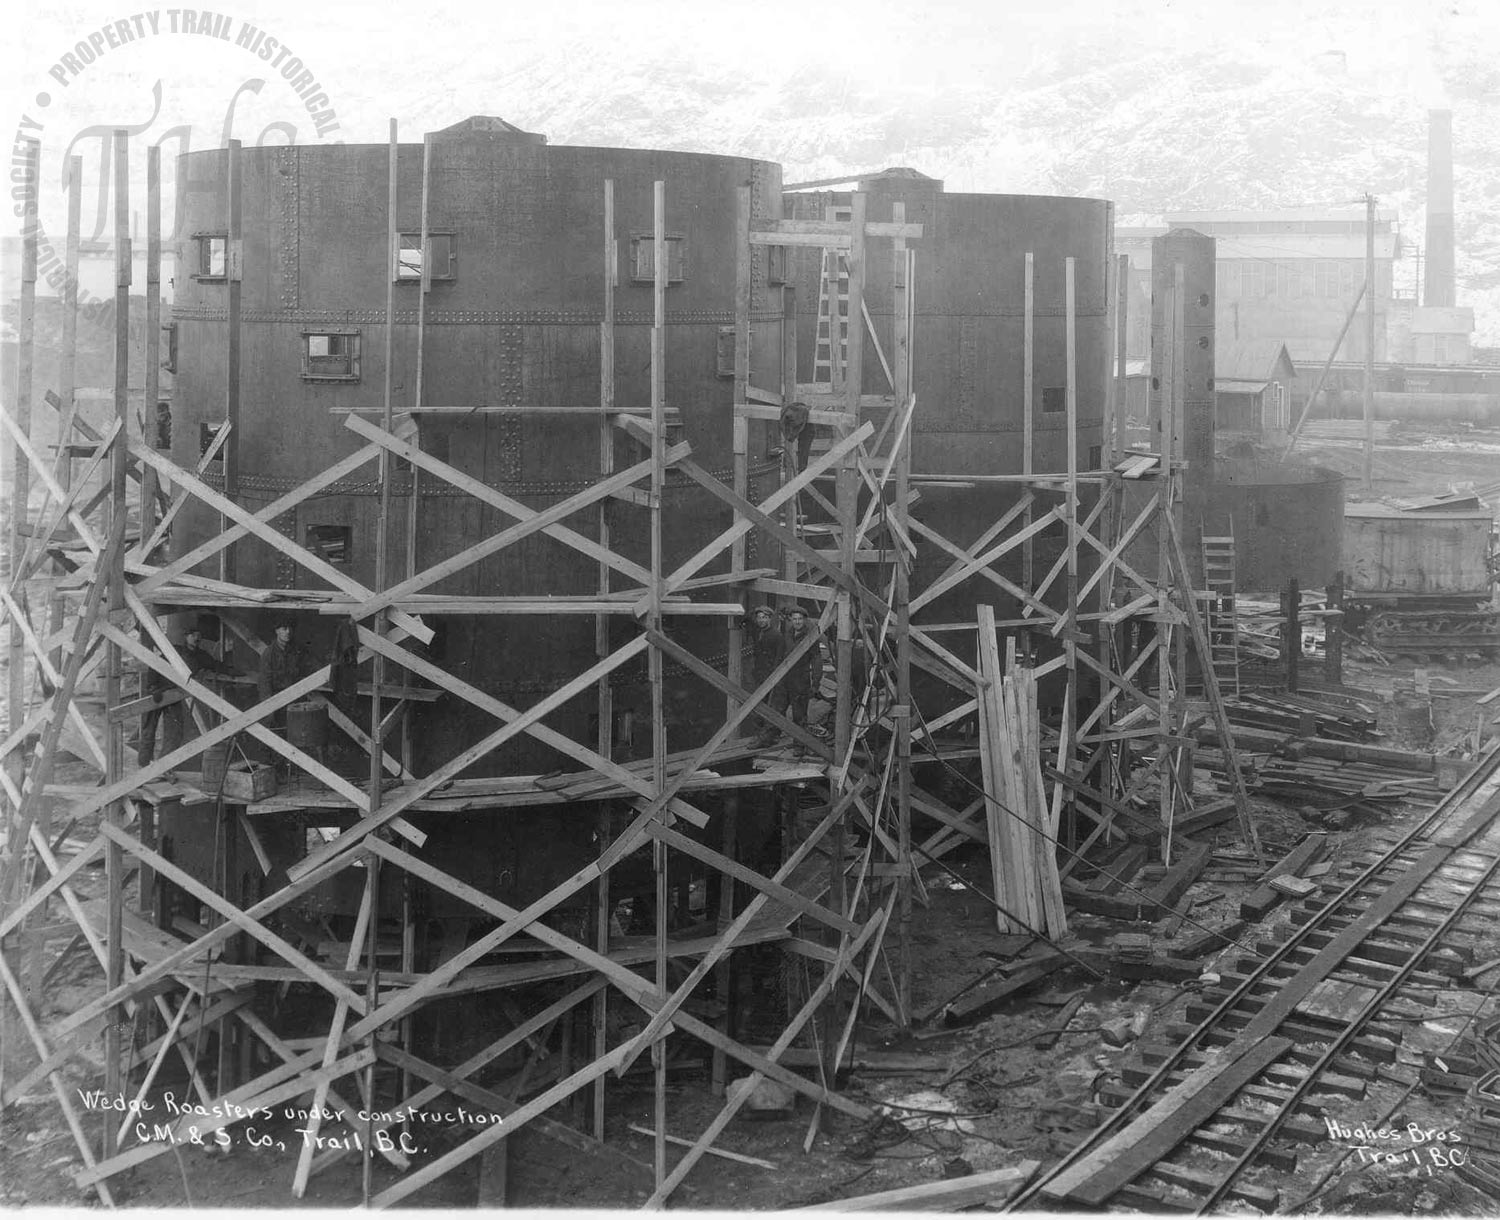 Wedge roasters under construction, Trail Smelter (Hughes) - 1928